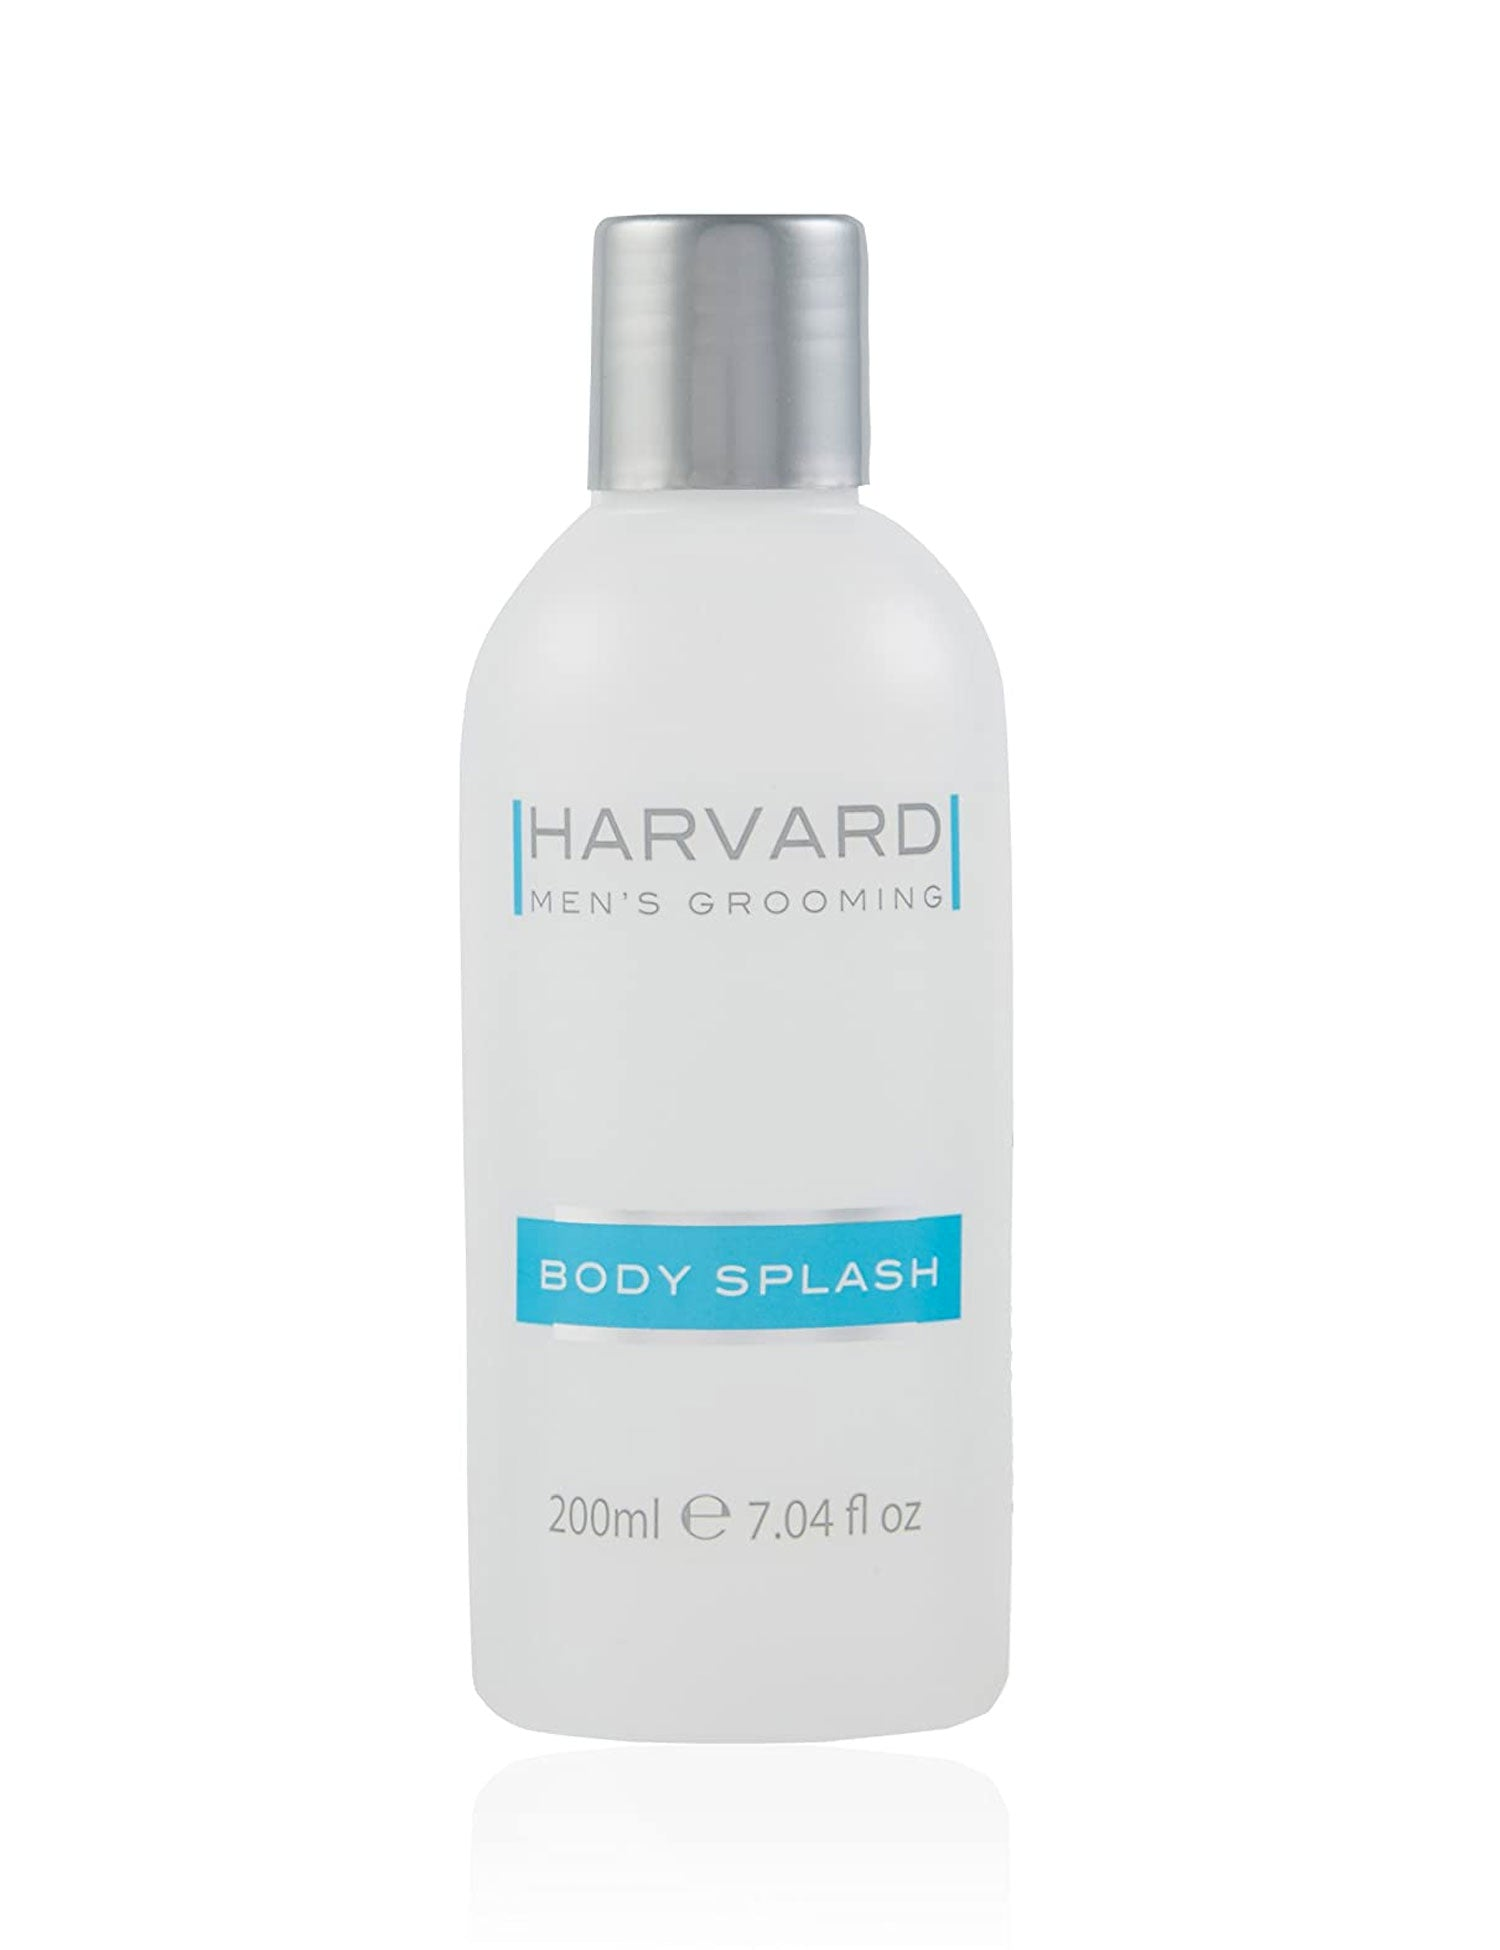 Harvard Body Splash 200ml